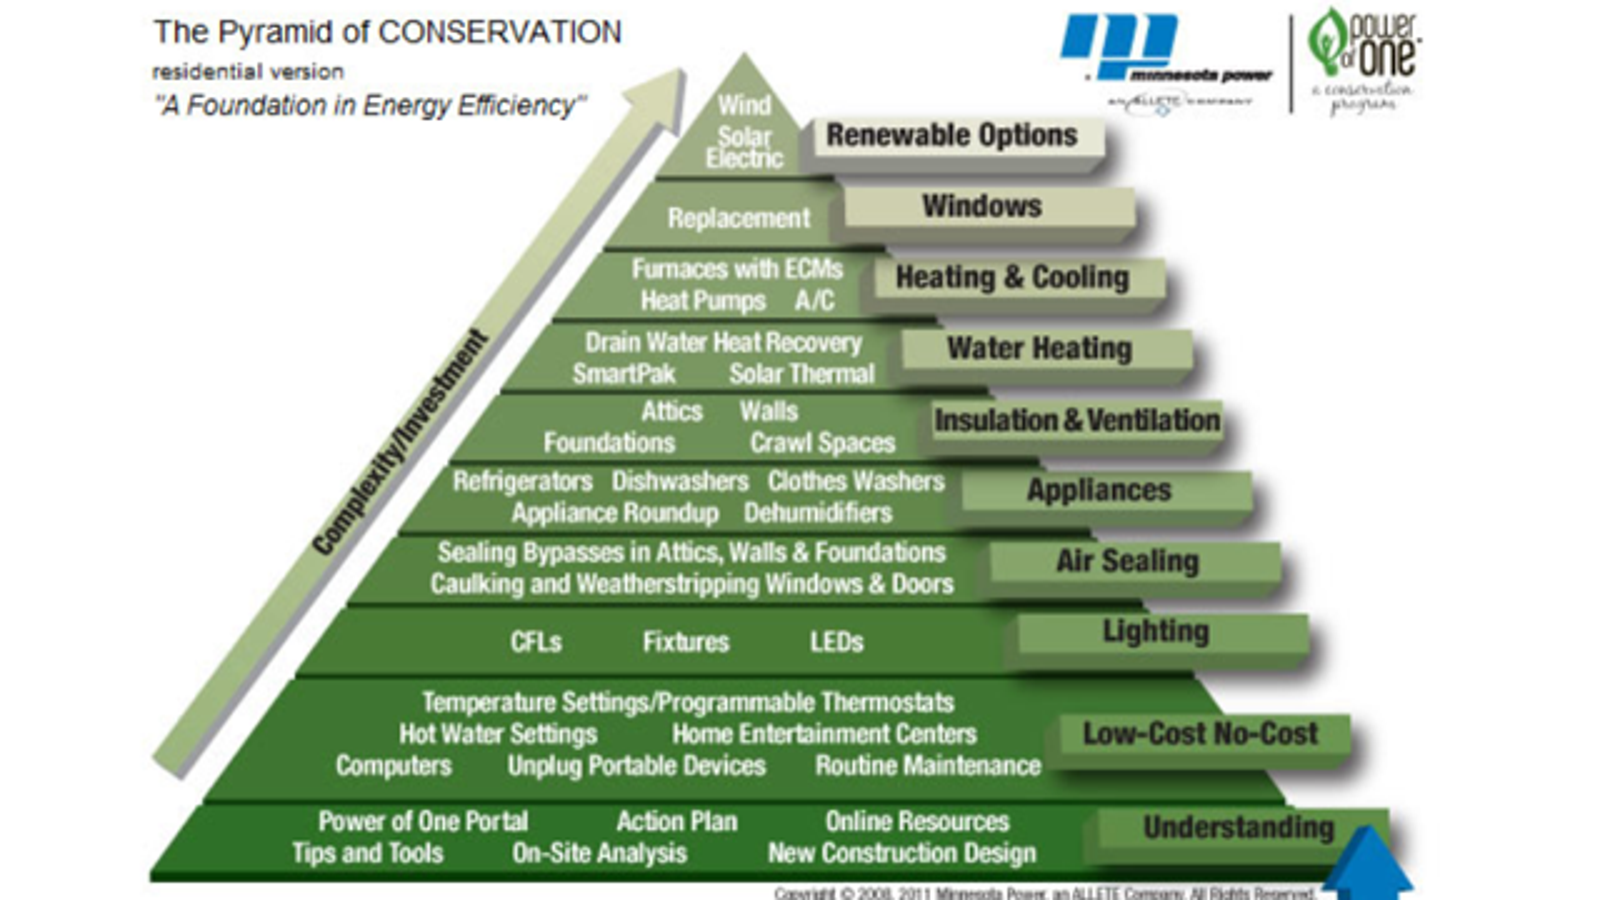 The Pyramid Of Conservation Prioritizes Home Energy